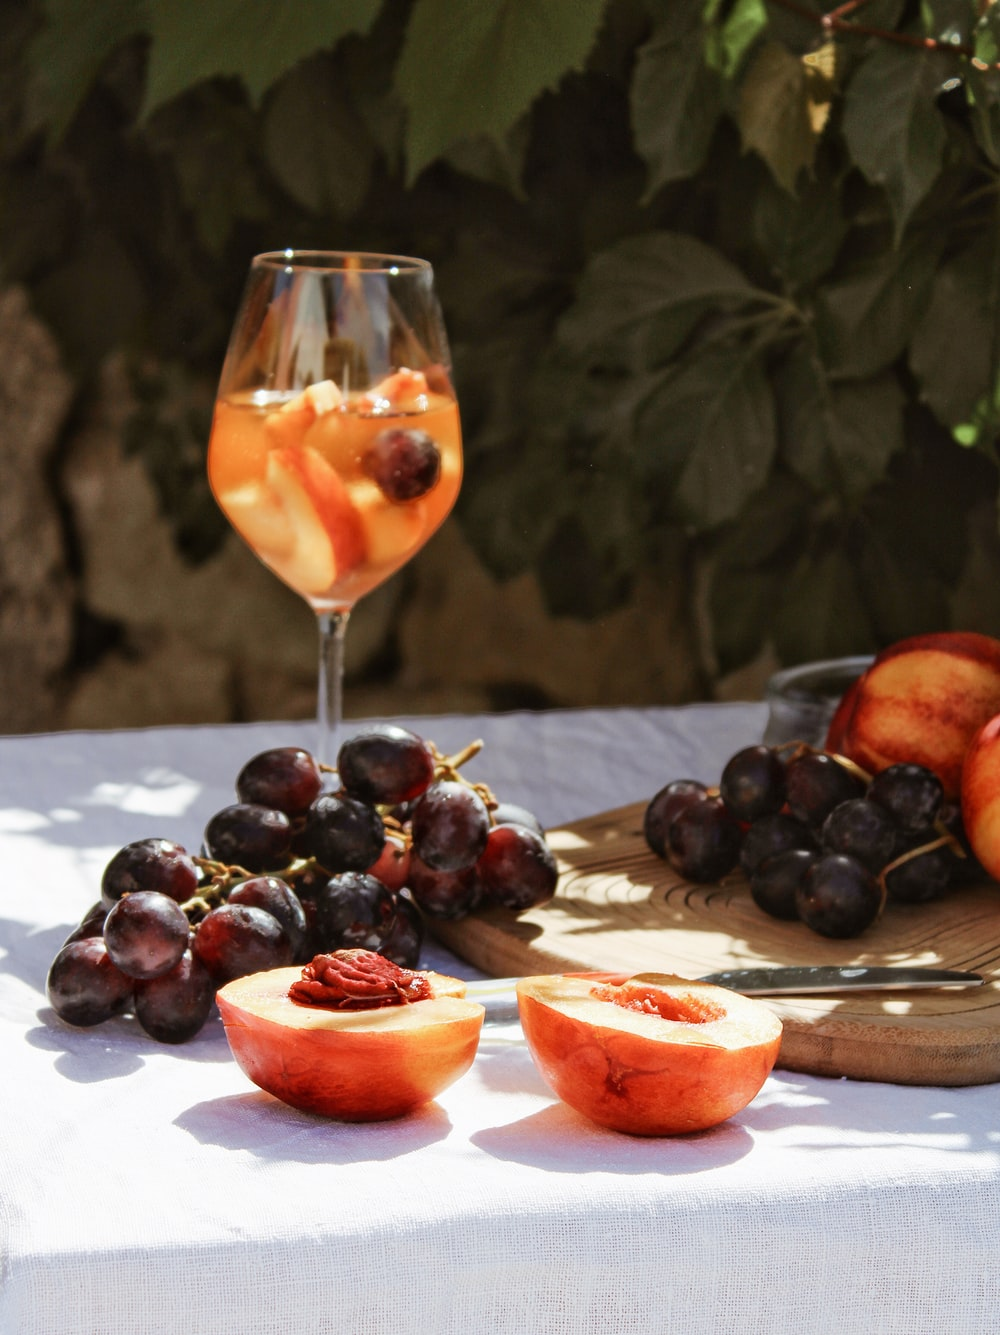 grapes and orange fruit on table